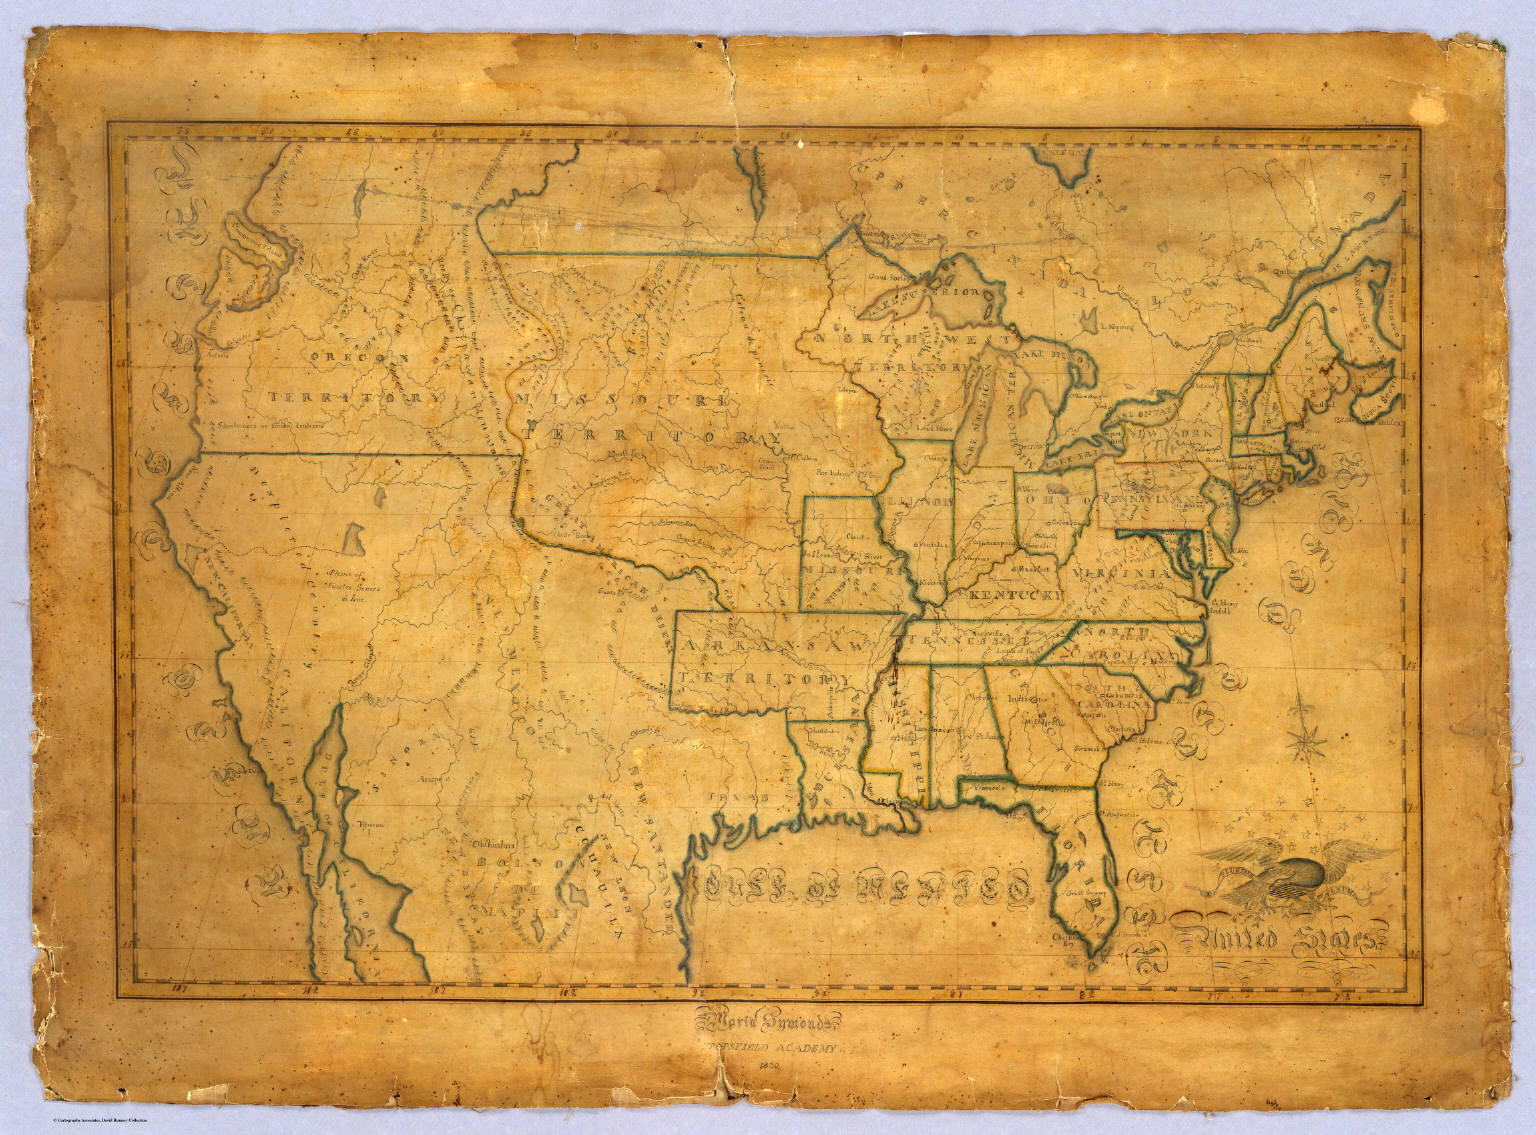 United States. - David Rumsey Historical Map Collection